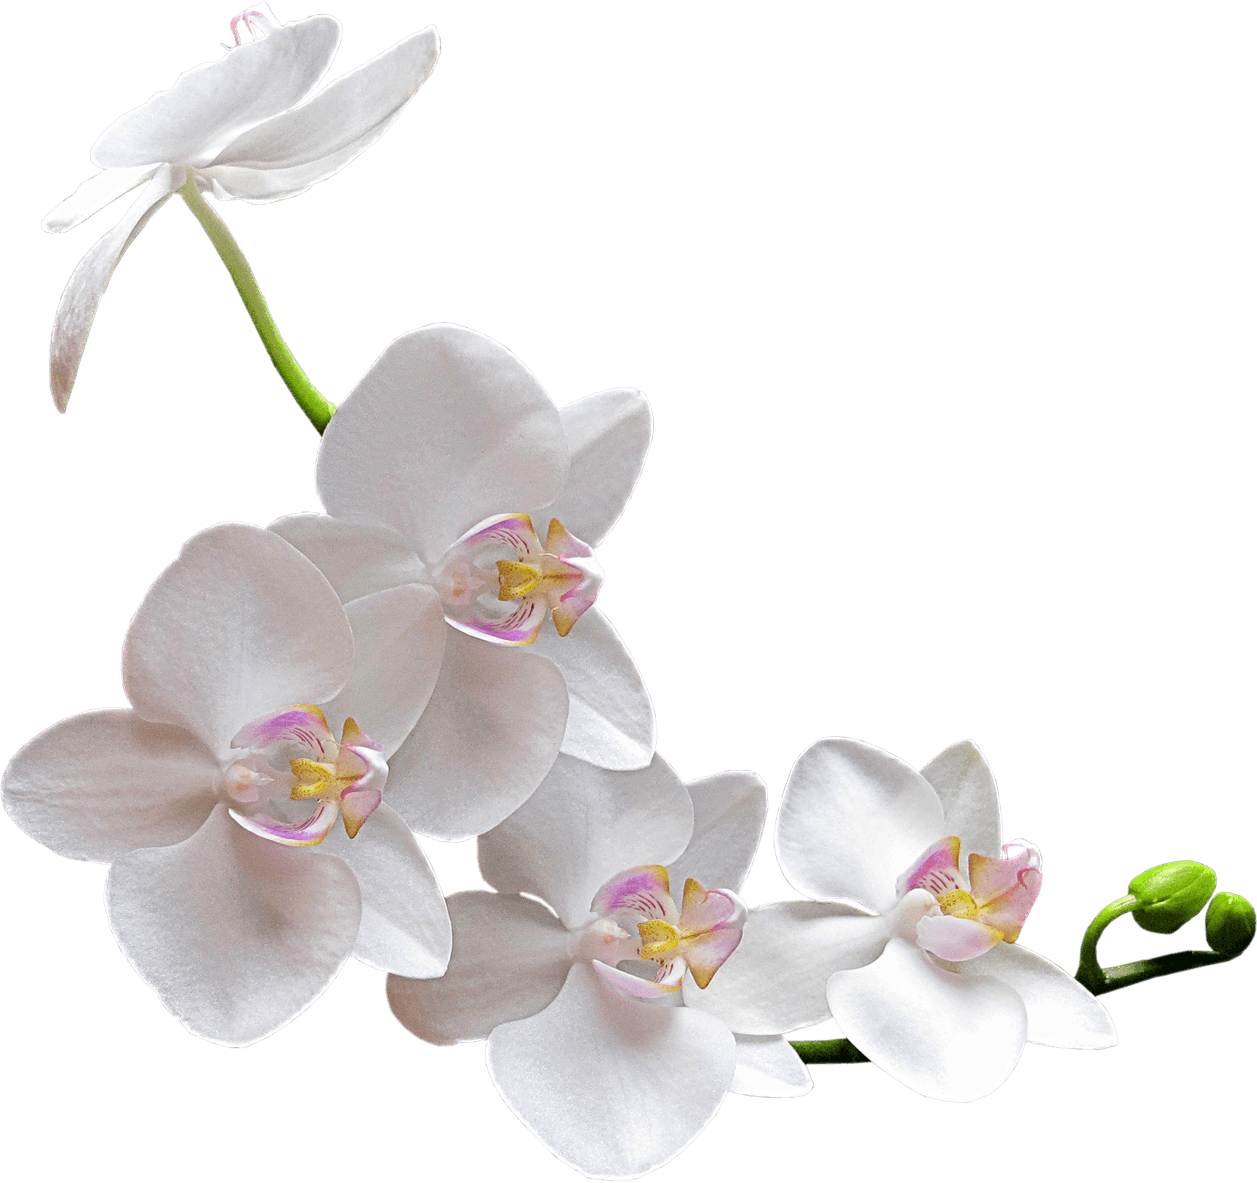 Orchid flower png. White transparent stickpng nature